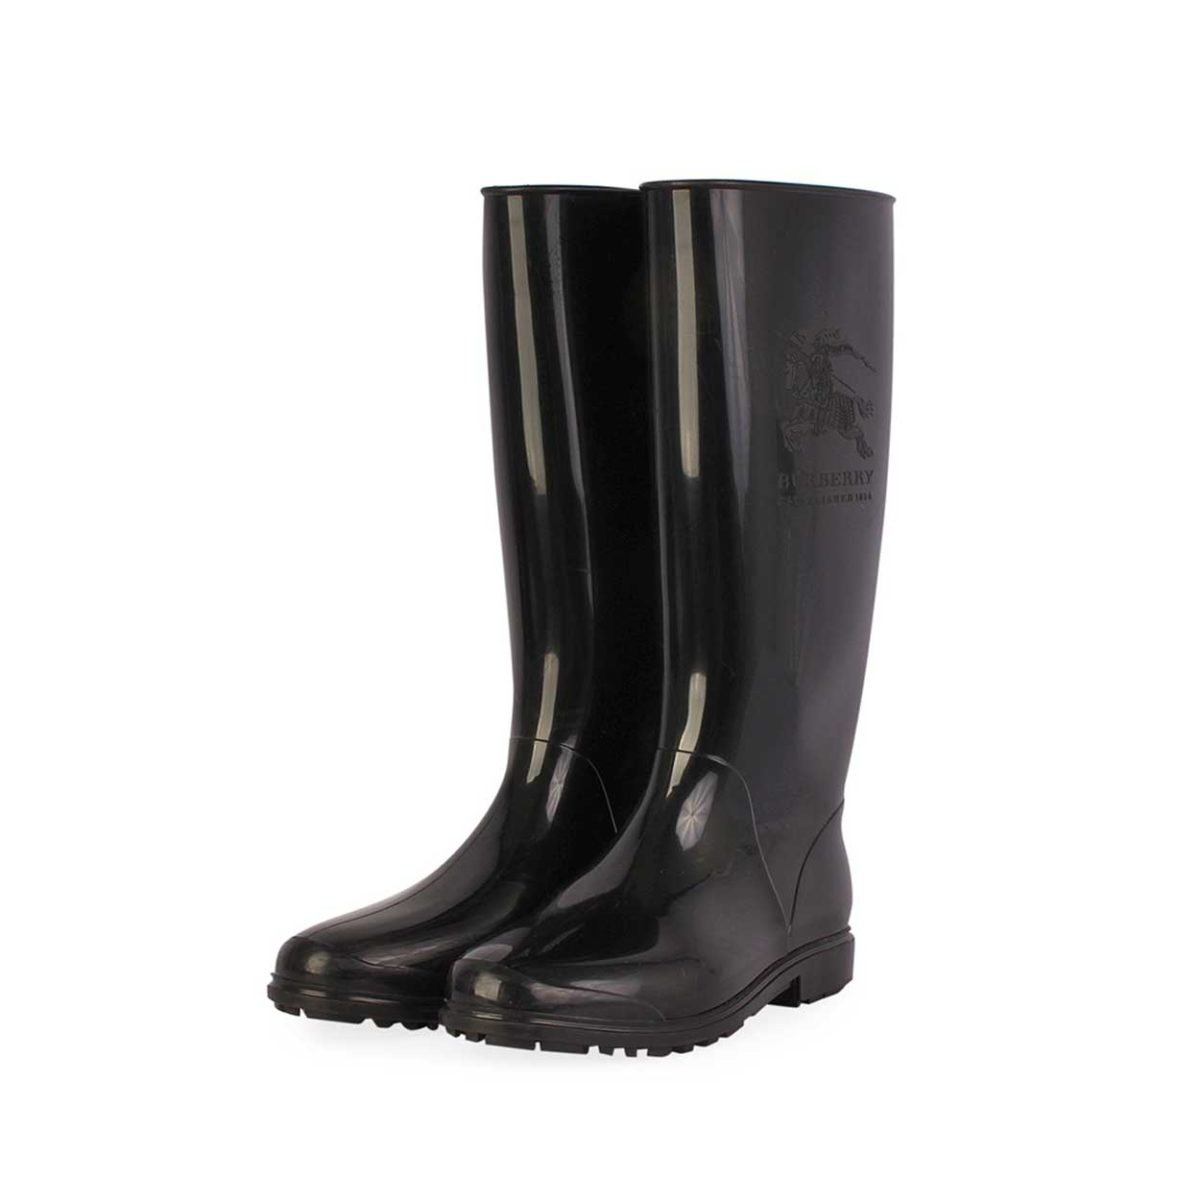 Burberry Rain Boots Black S 38 5 Luxity